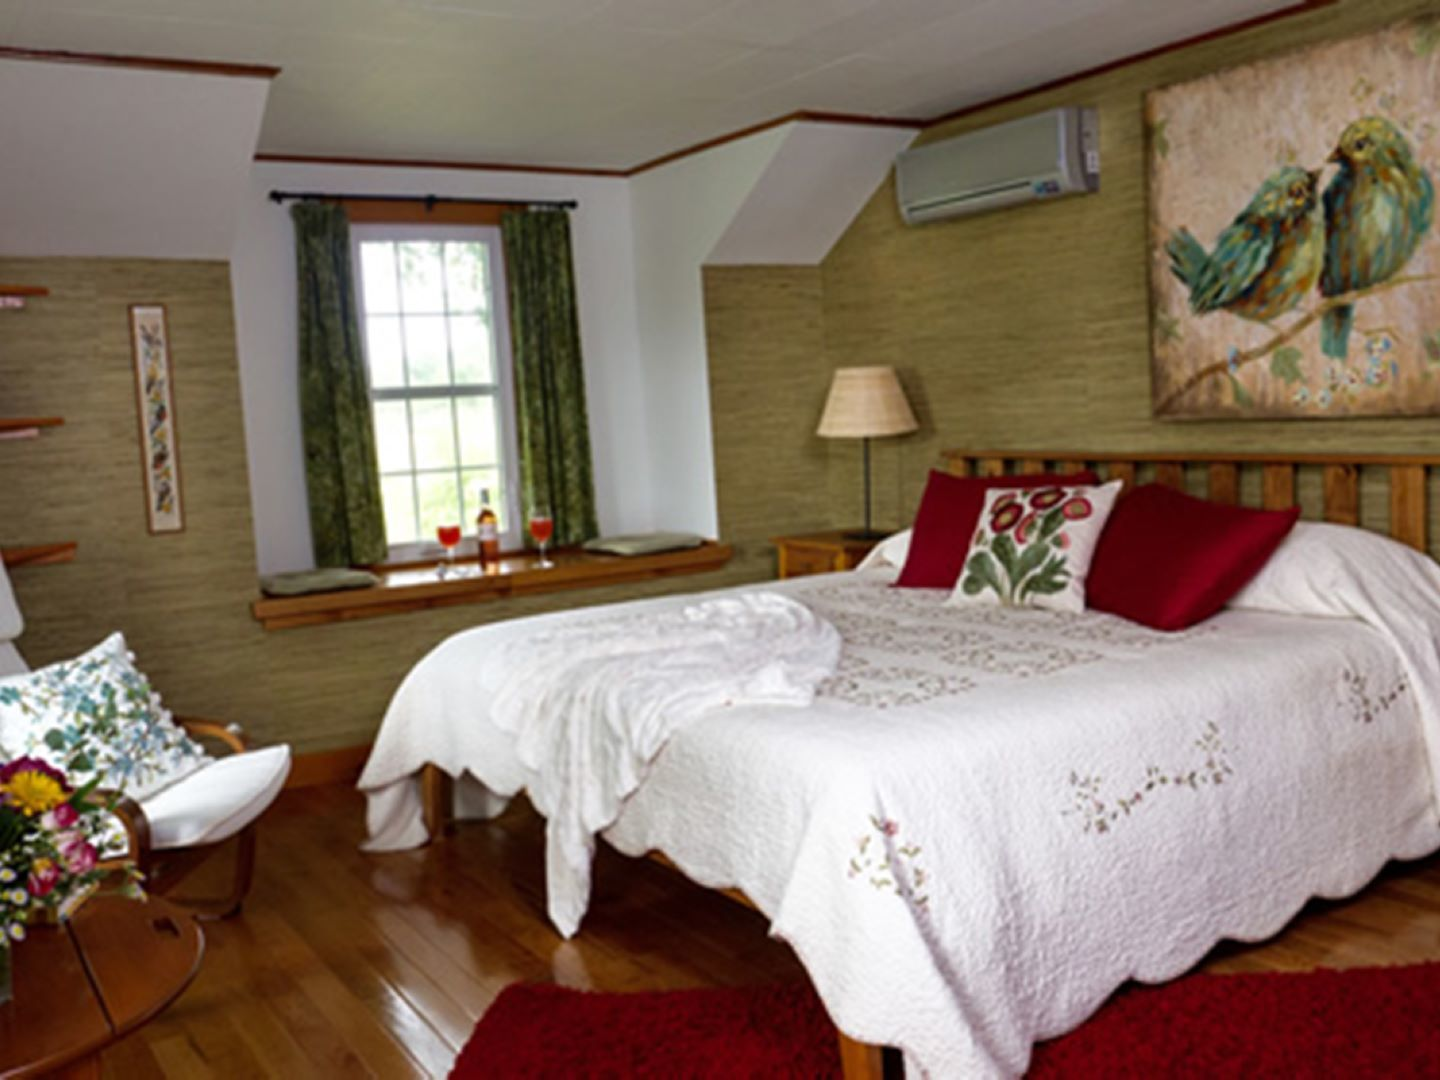 A double bed in a room at Enfield Manor Bed and Breakfast and Vacation Rentals.